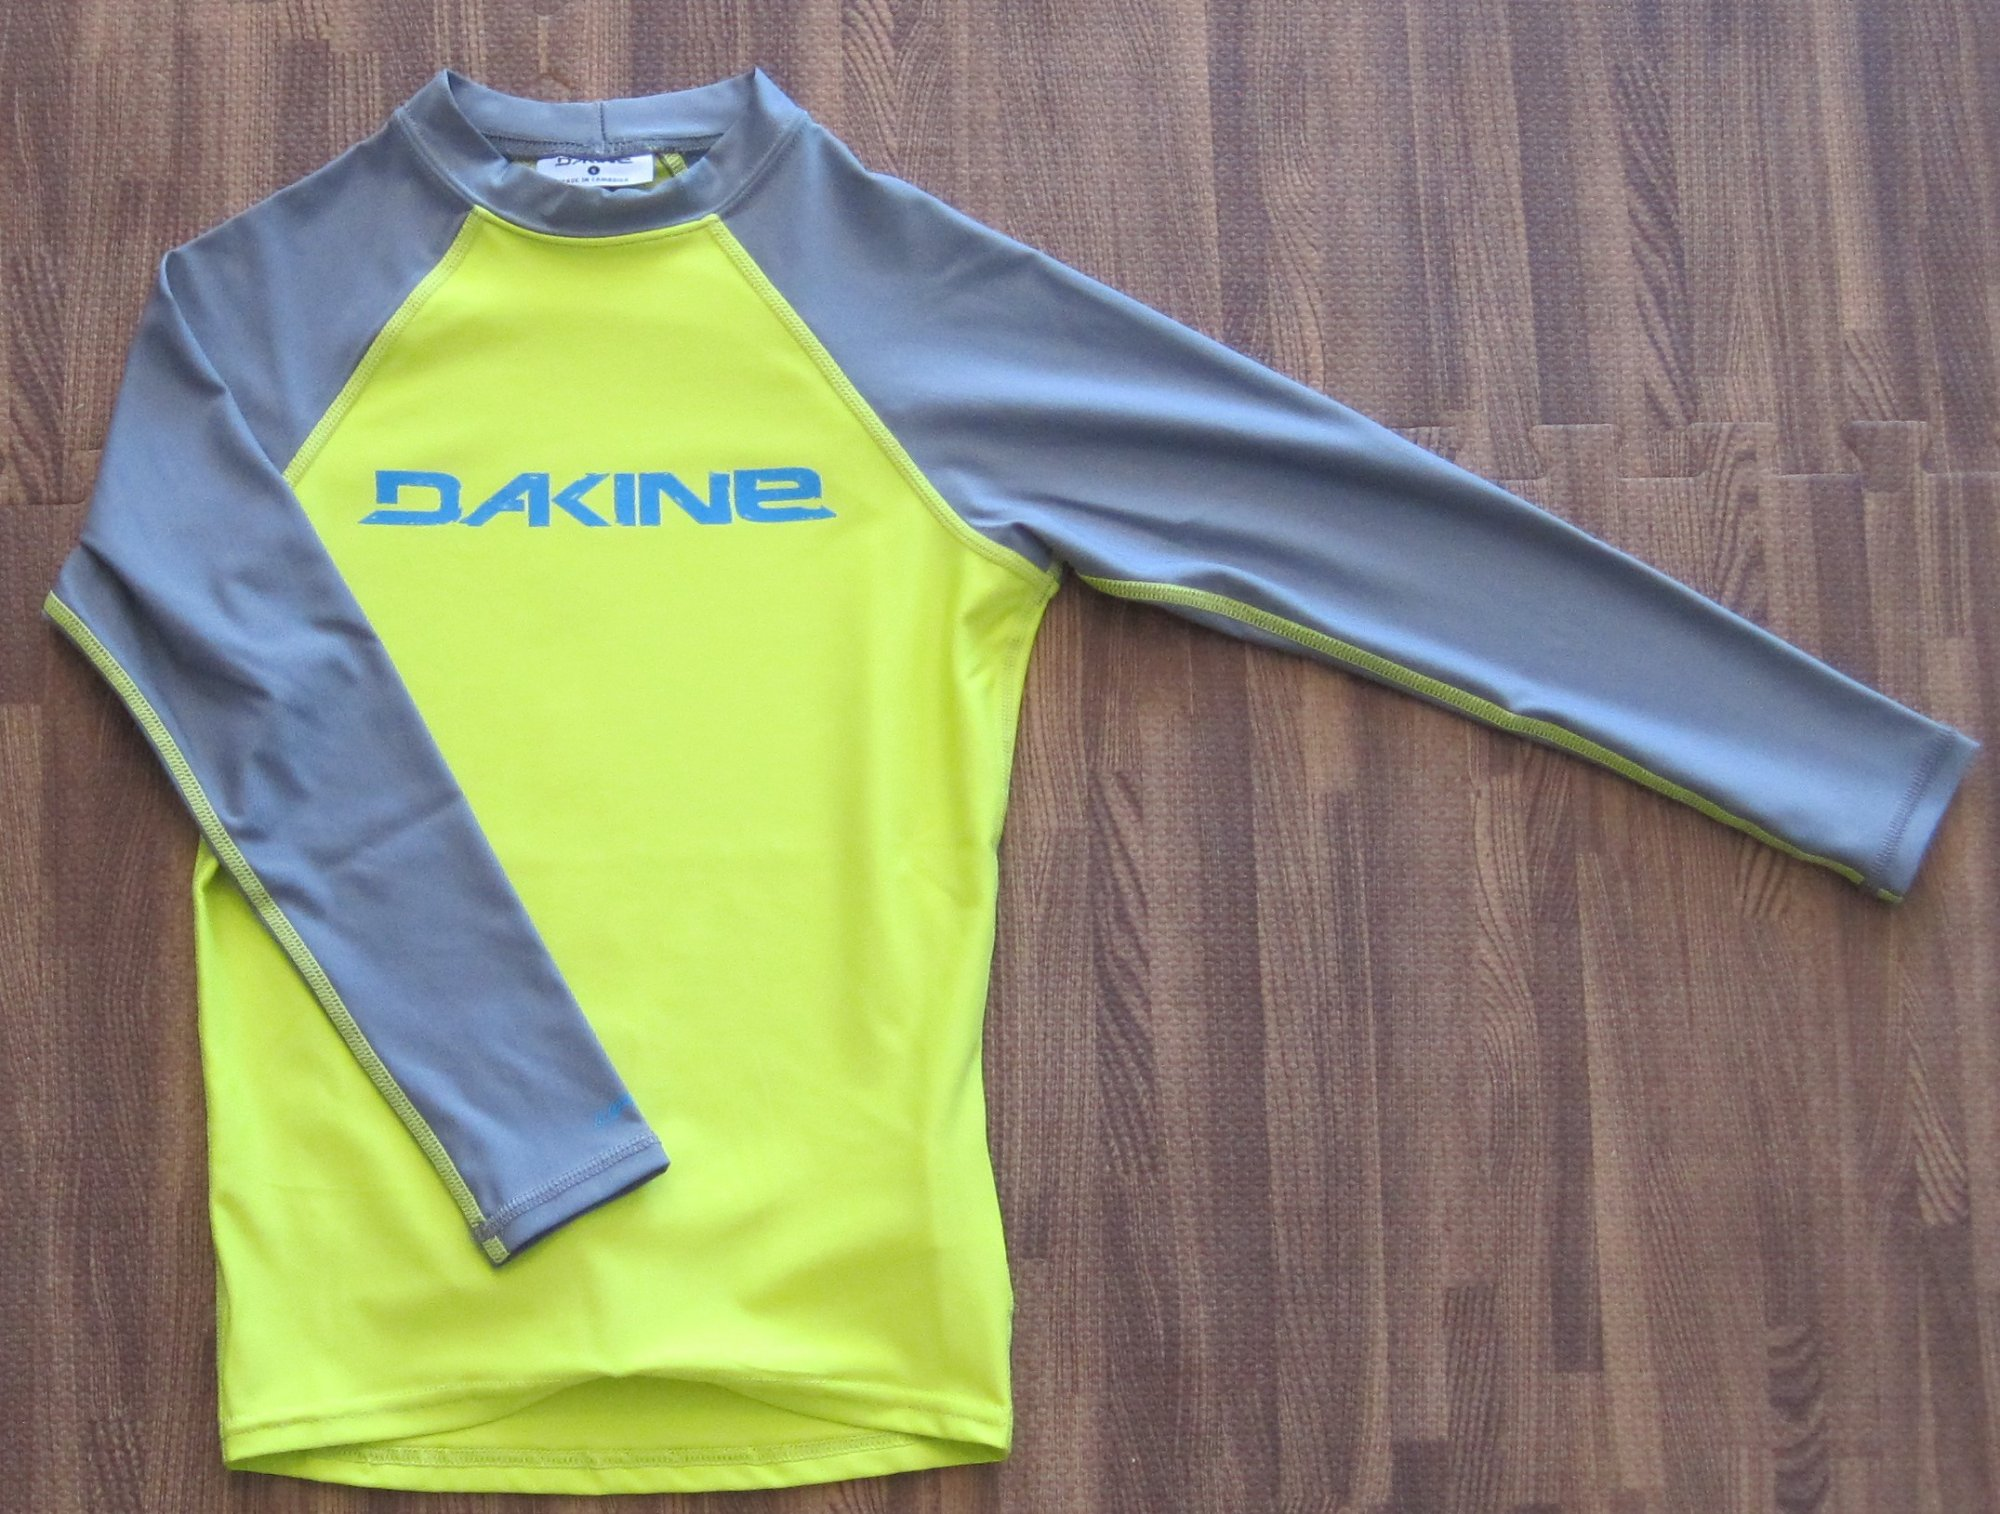 Dakine Boy's Heavy Duty L/S (Snug Fit) Rashguard